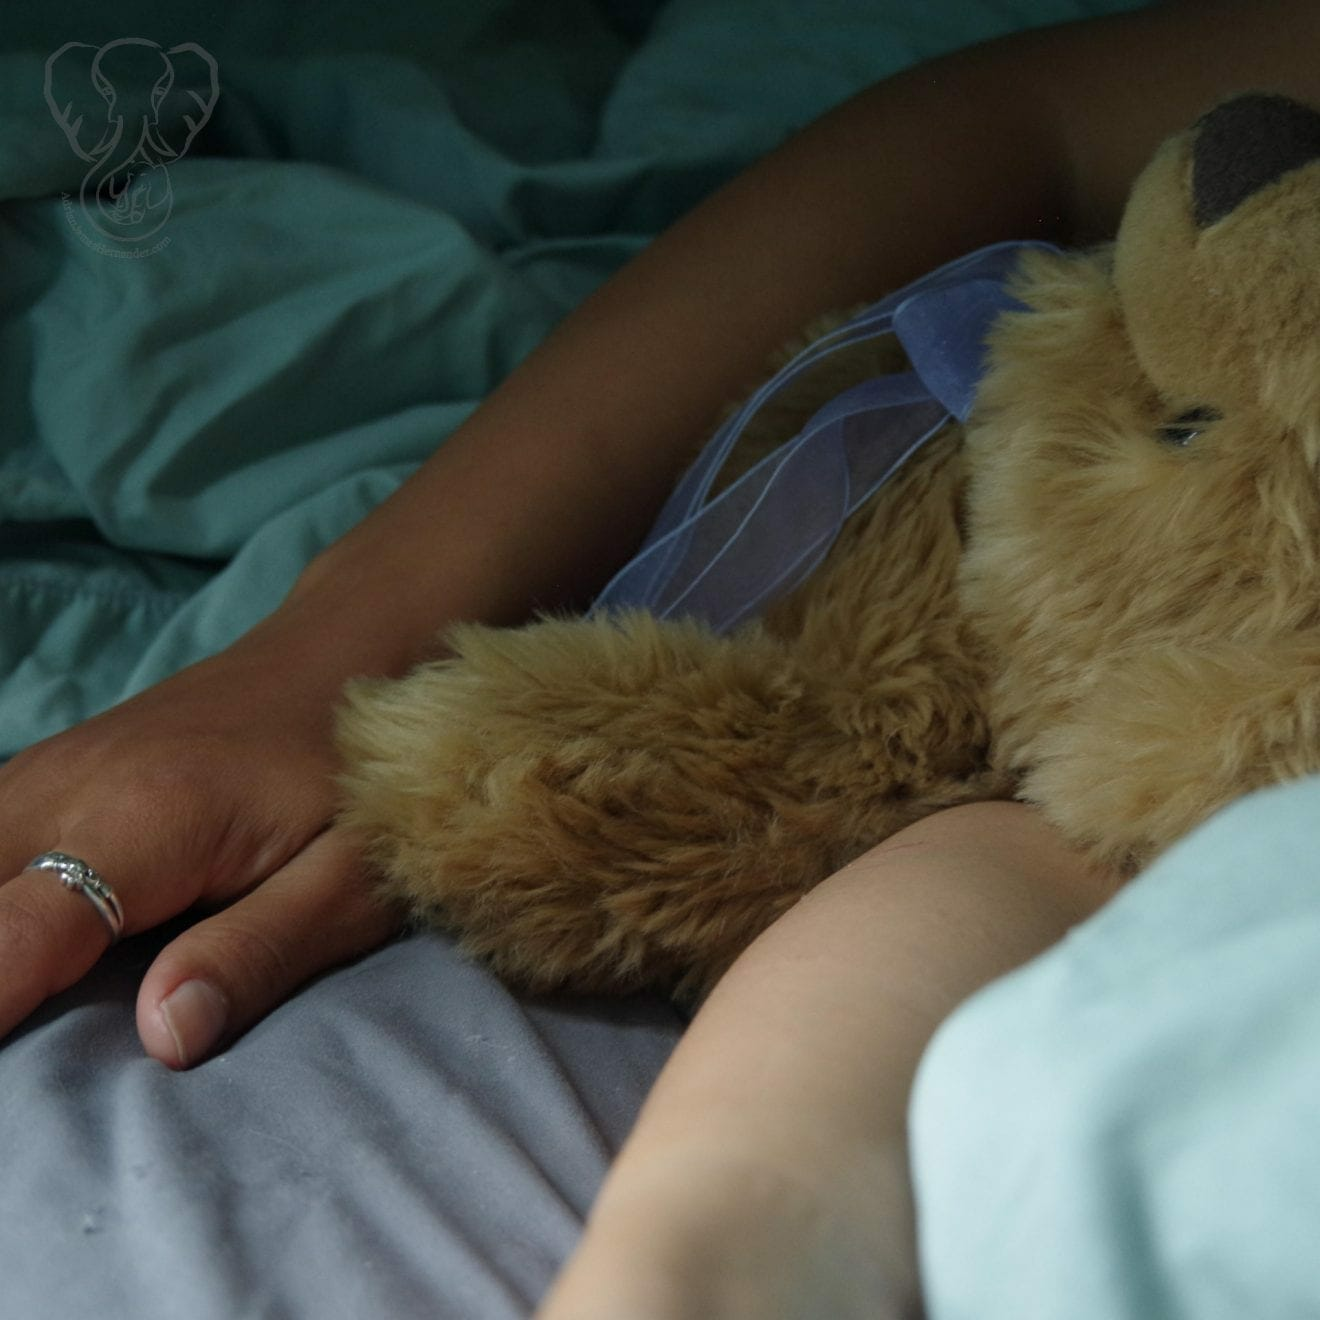 Miranda and her Comfort Cub lying in bed in the dark. Miranda's arm is wrapped around the cub, and her clauddagh ring is visible on her right ring finger (Synch Media)